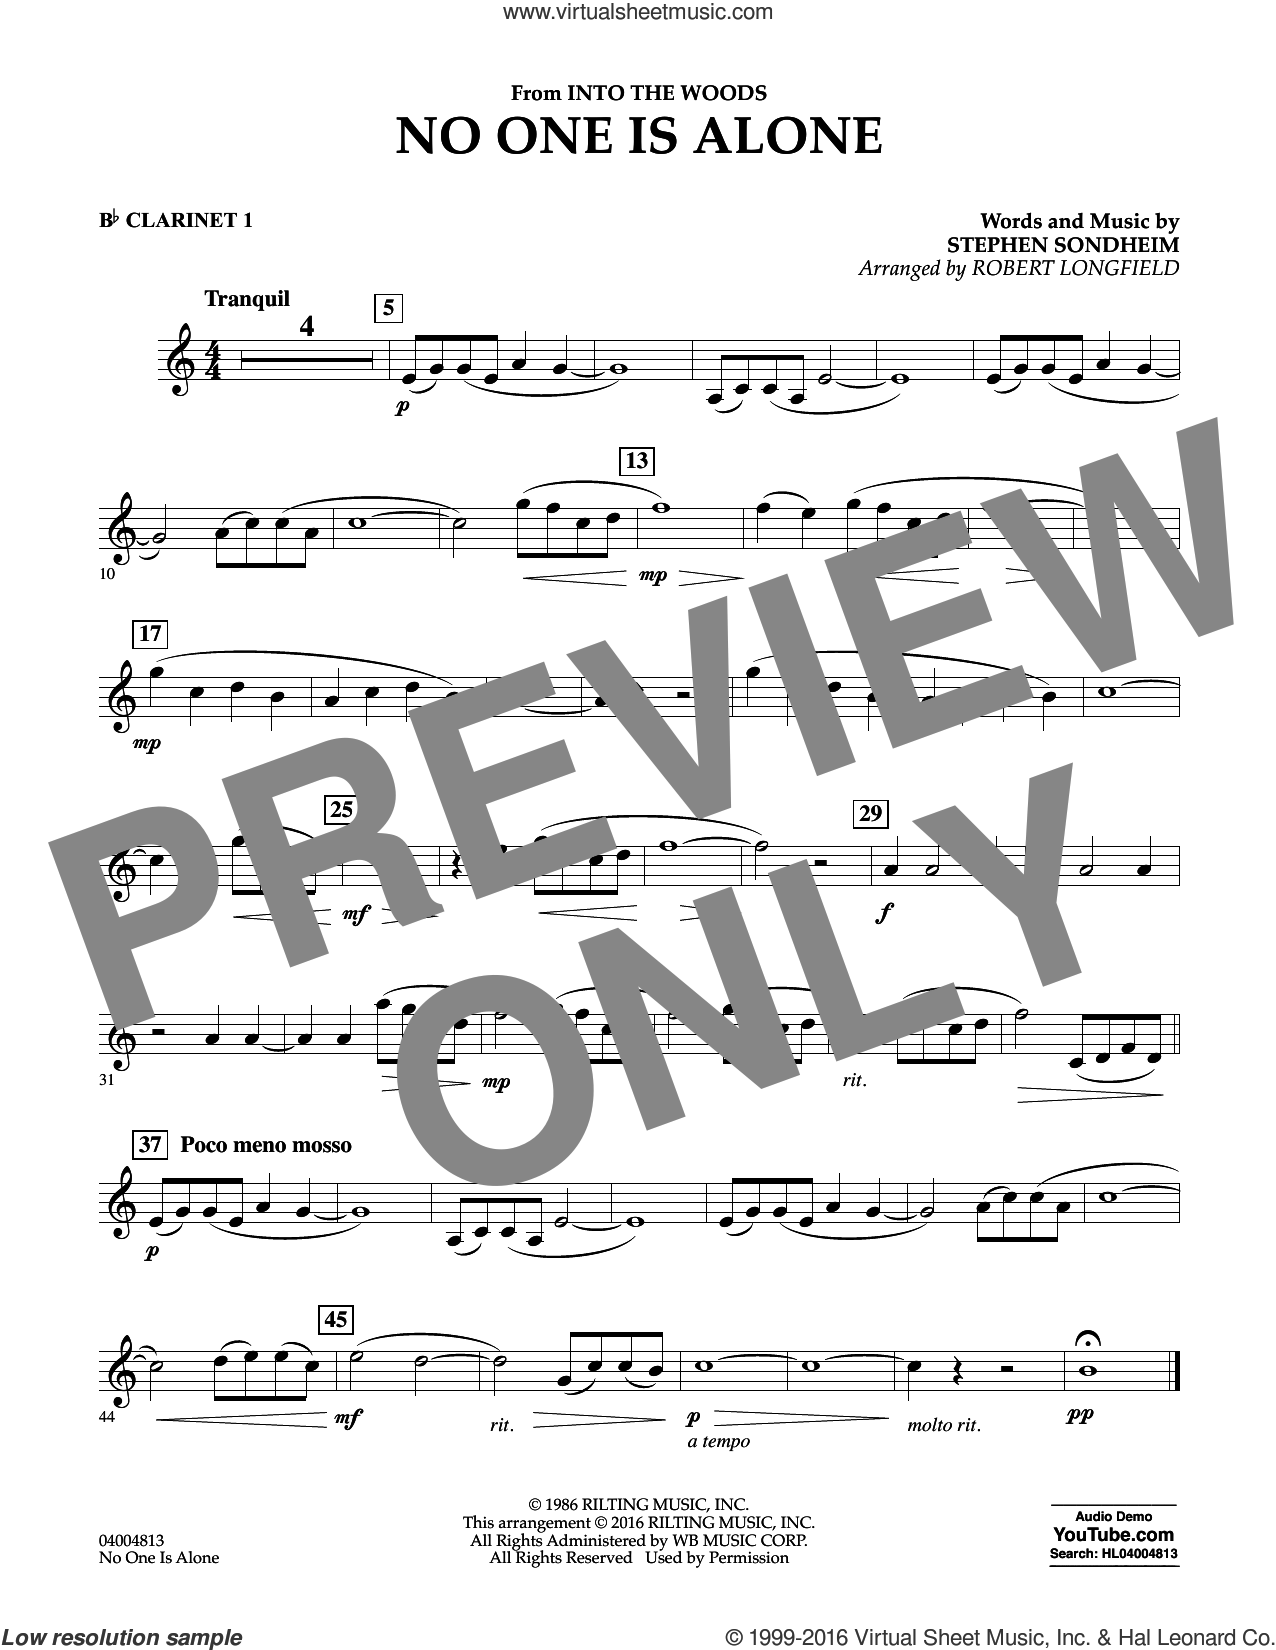 No One Is Alone sheet music for concert band (Bb clarinet 1) by Stephen Sondheim and Robert Longfield. Score Image Preview.